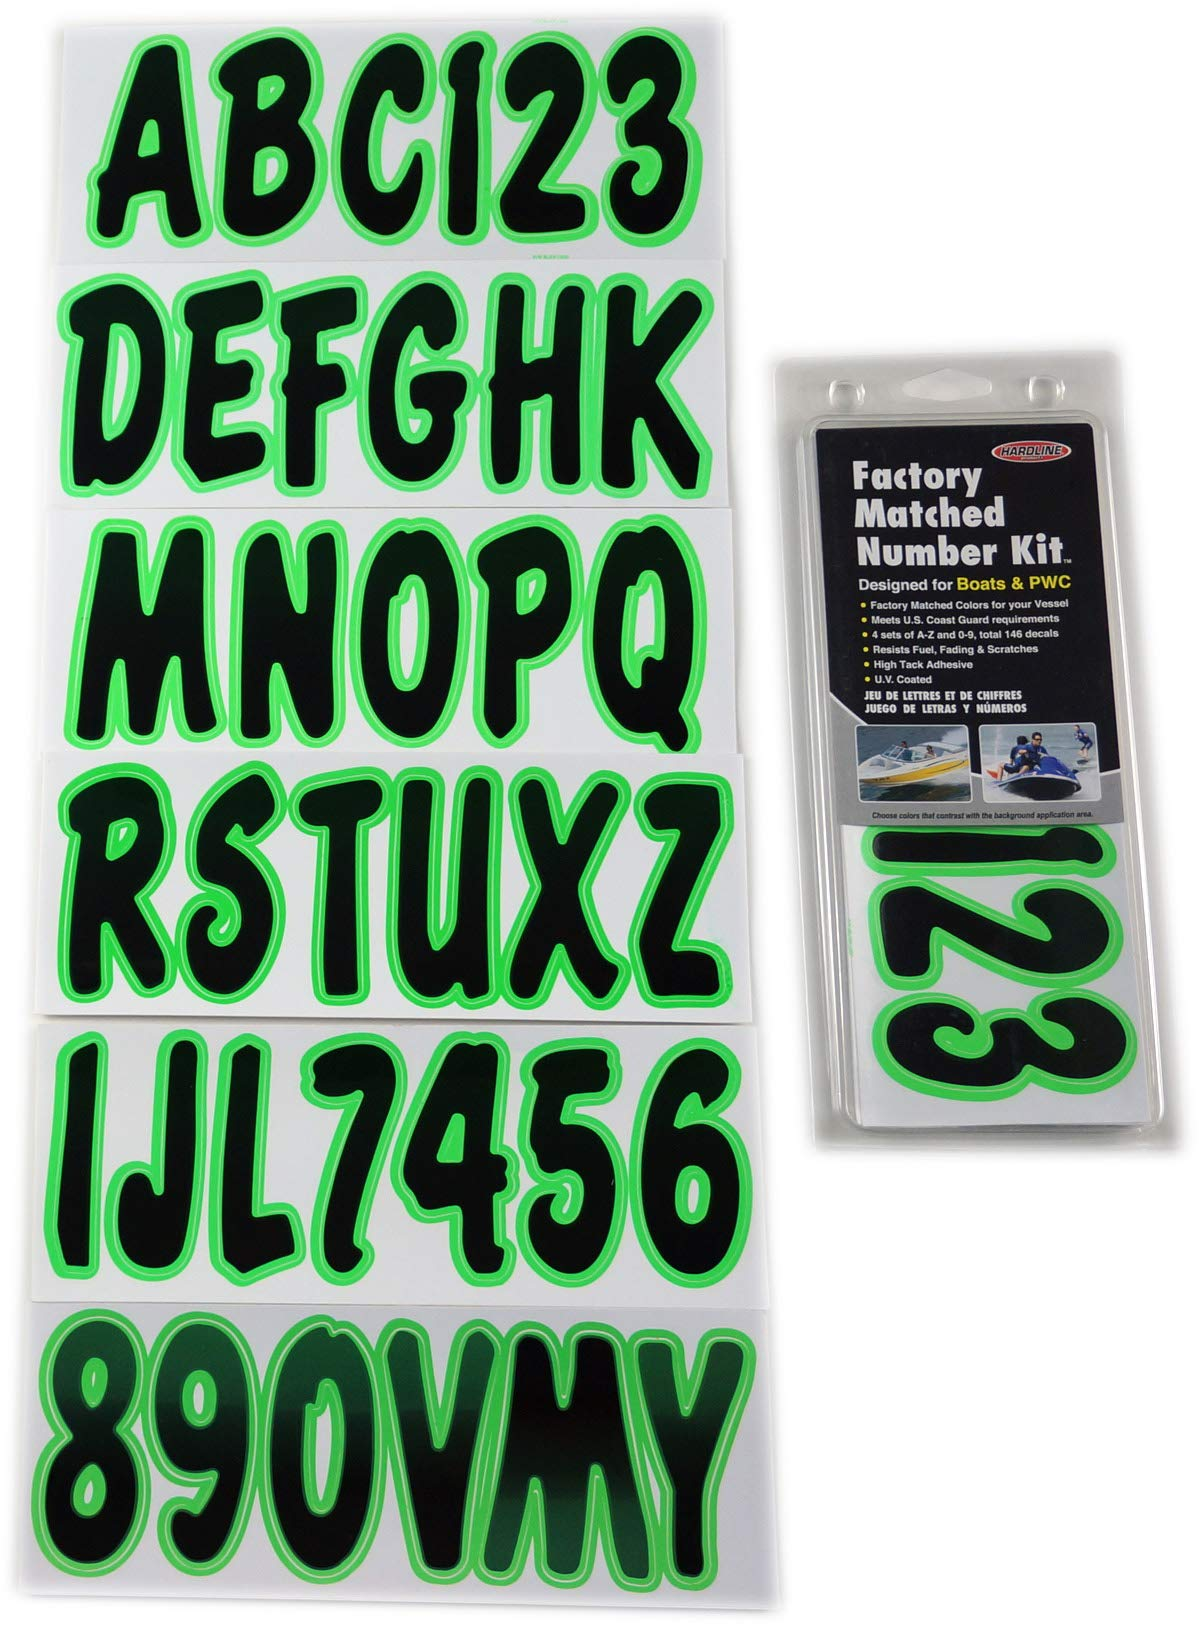 Hardline Factory Matched Number Kit Designed for Boats and PWC Green TEBKG200